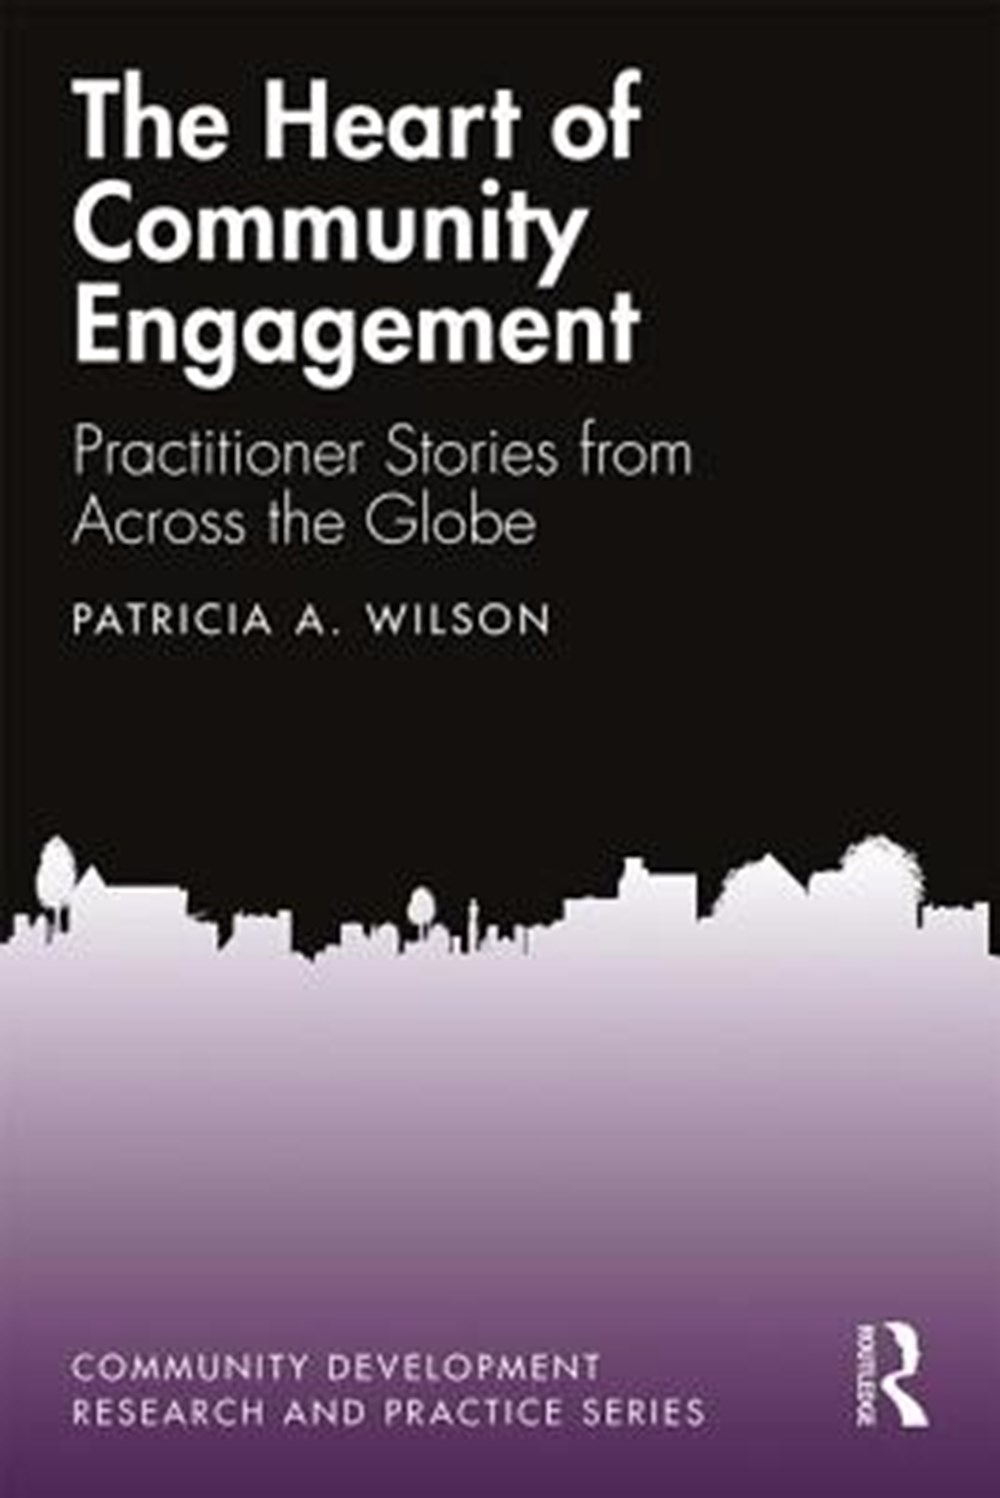 Heart of Community Engagement Practitioner Stories from Across the Globe